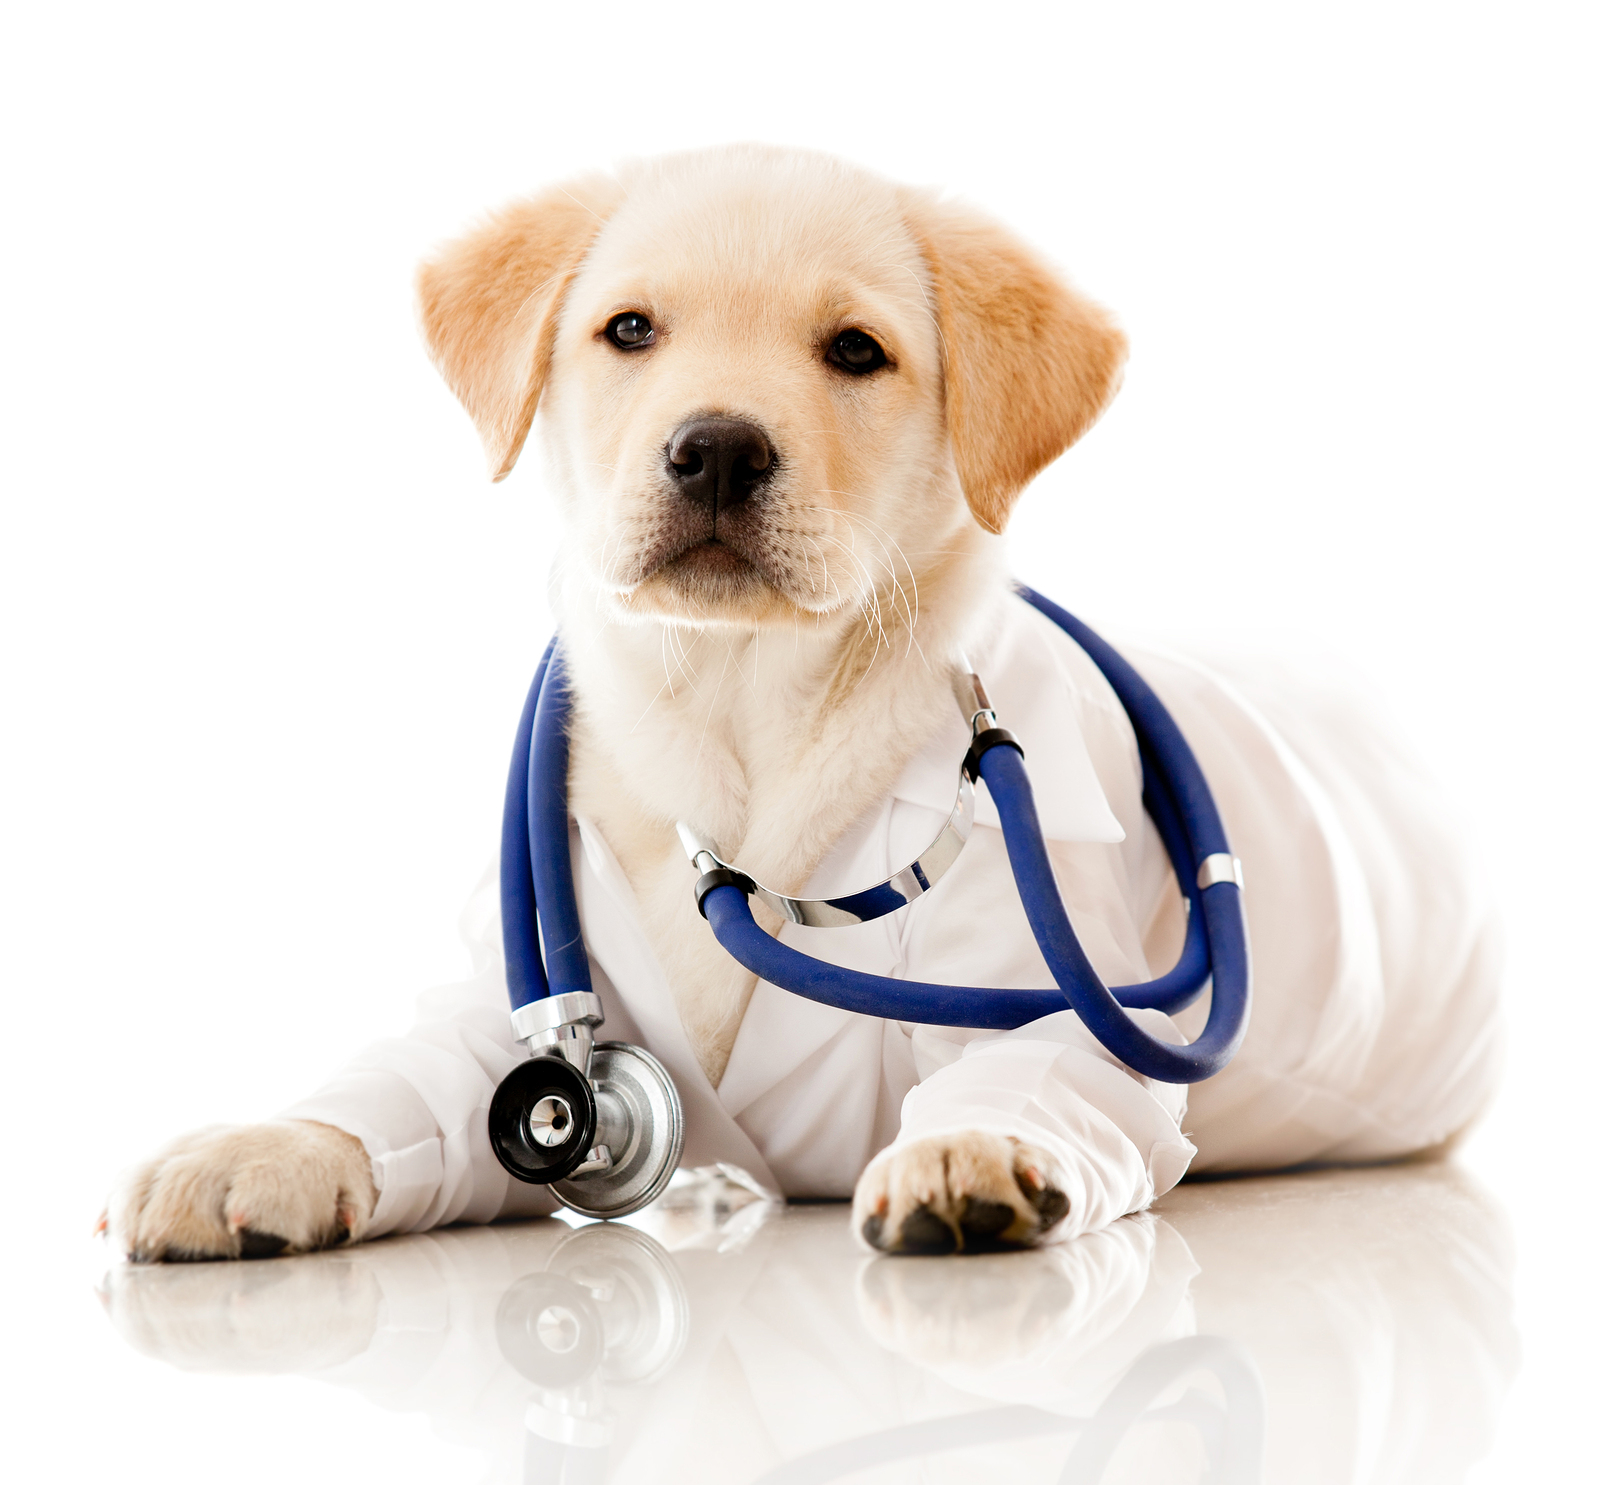 Little dog as a vet wearing robe and stethoscope – isolated over